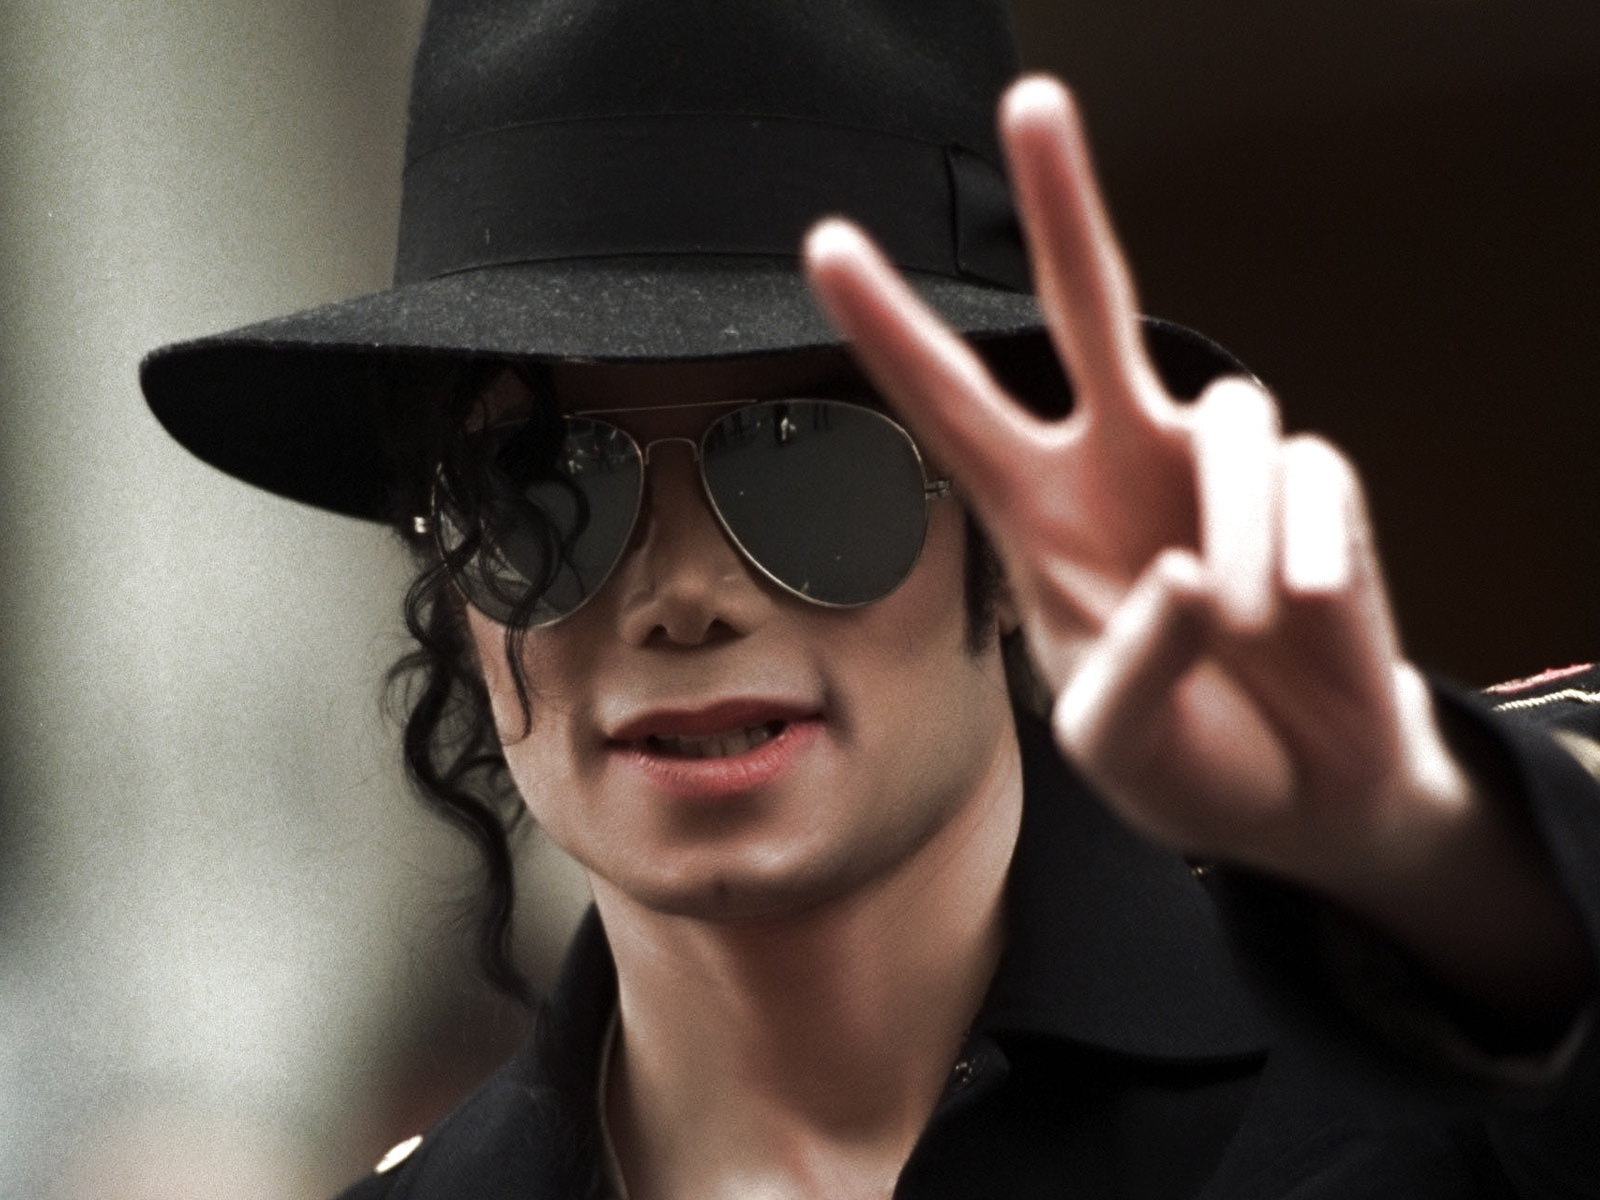 http://1.bp.blogspot.com/-rVsmvLT8baY/TuycE96D10I/AAAAAAAAAC8/kcbt3_SsHW8/s1600/The-best-top-desktop-michael-jackson-wallpapers-2.jpg